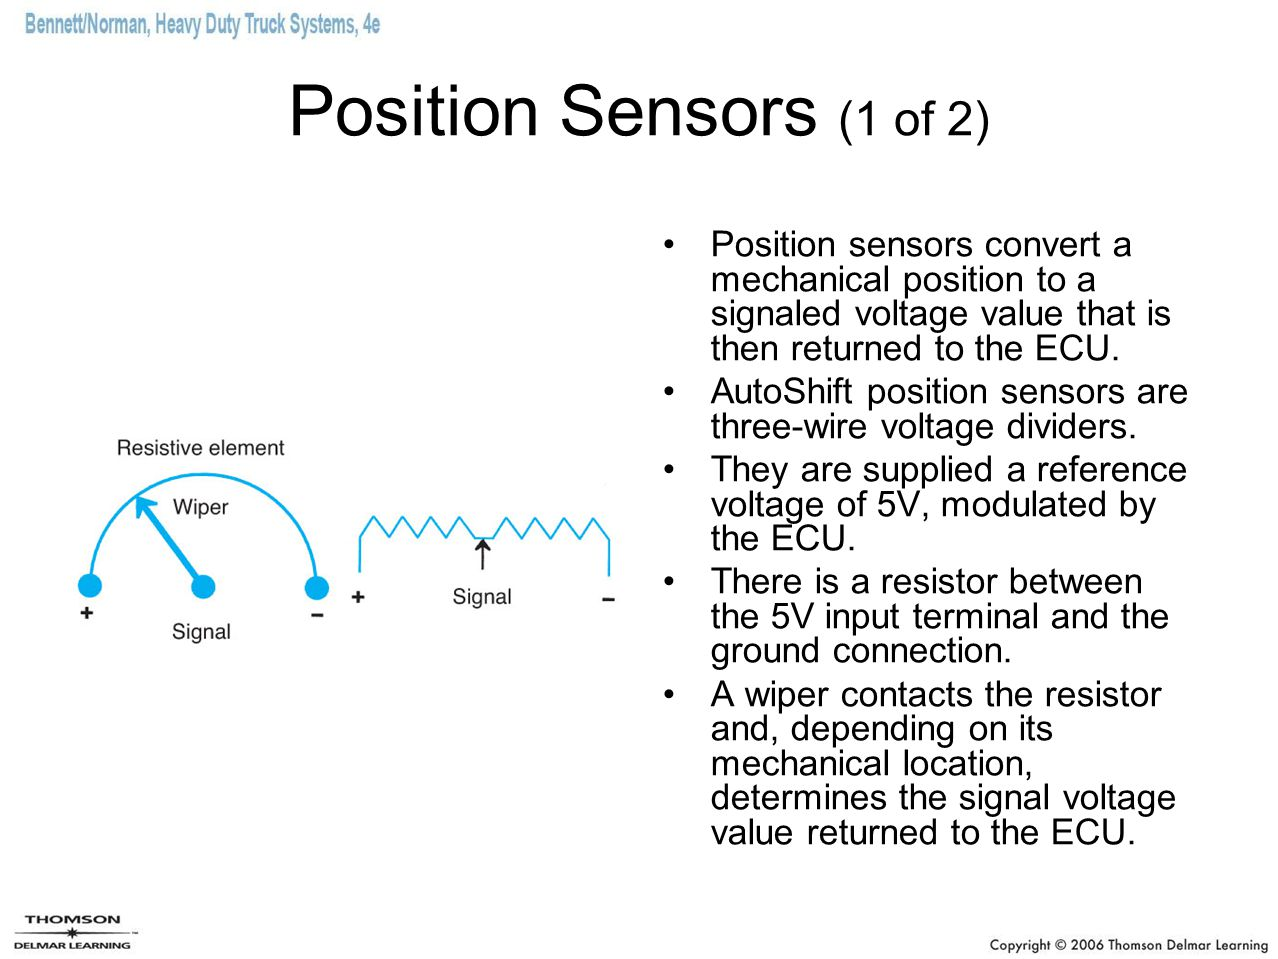 Position Sensors (1 of 2) Position sensors convert a mechanical position to a signaled voltage value that is then returned to the ECU.